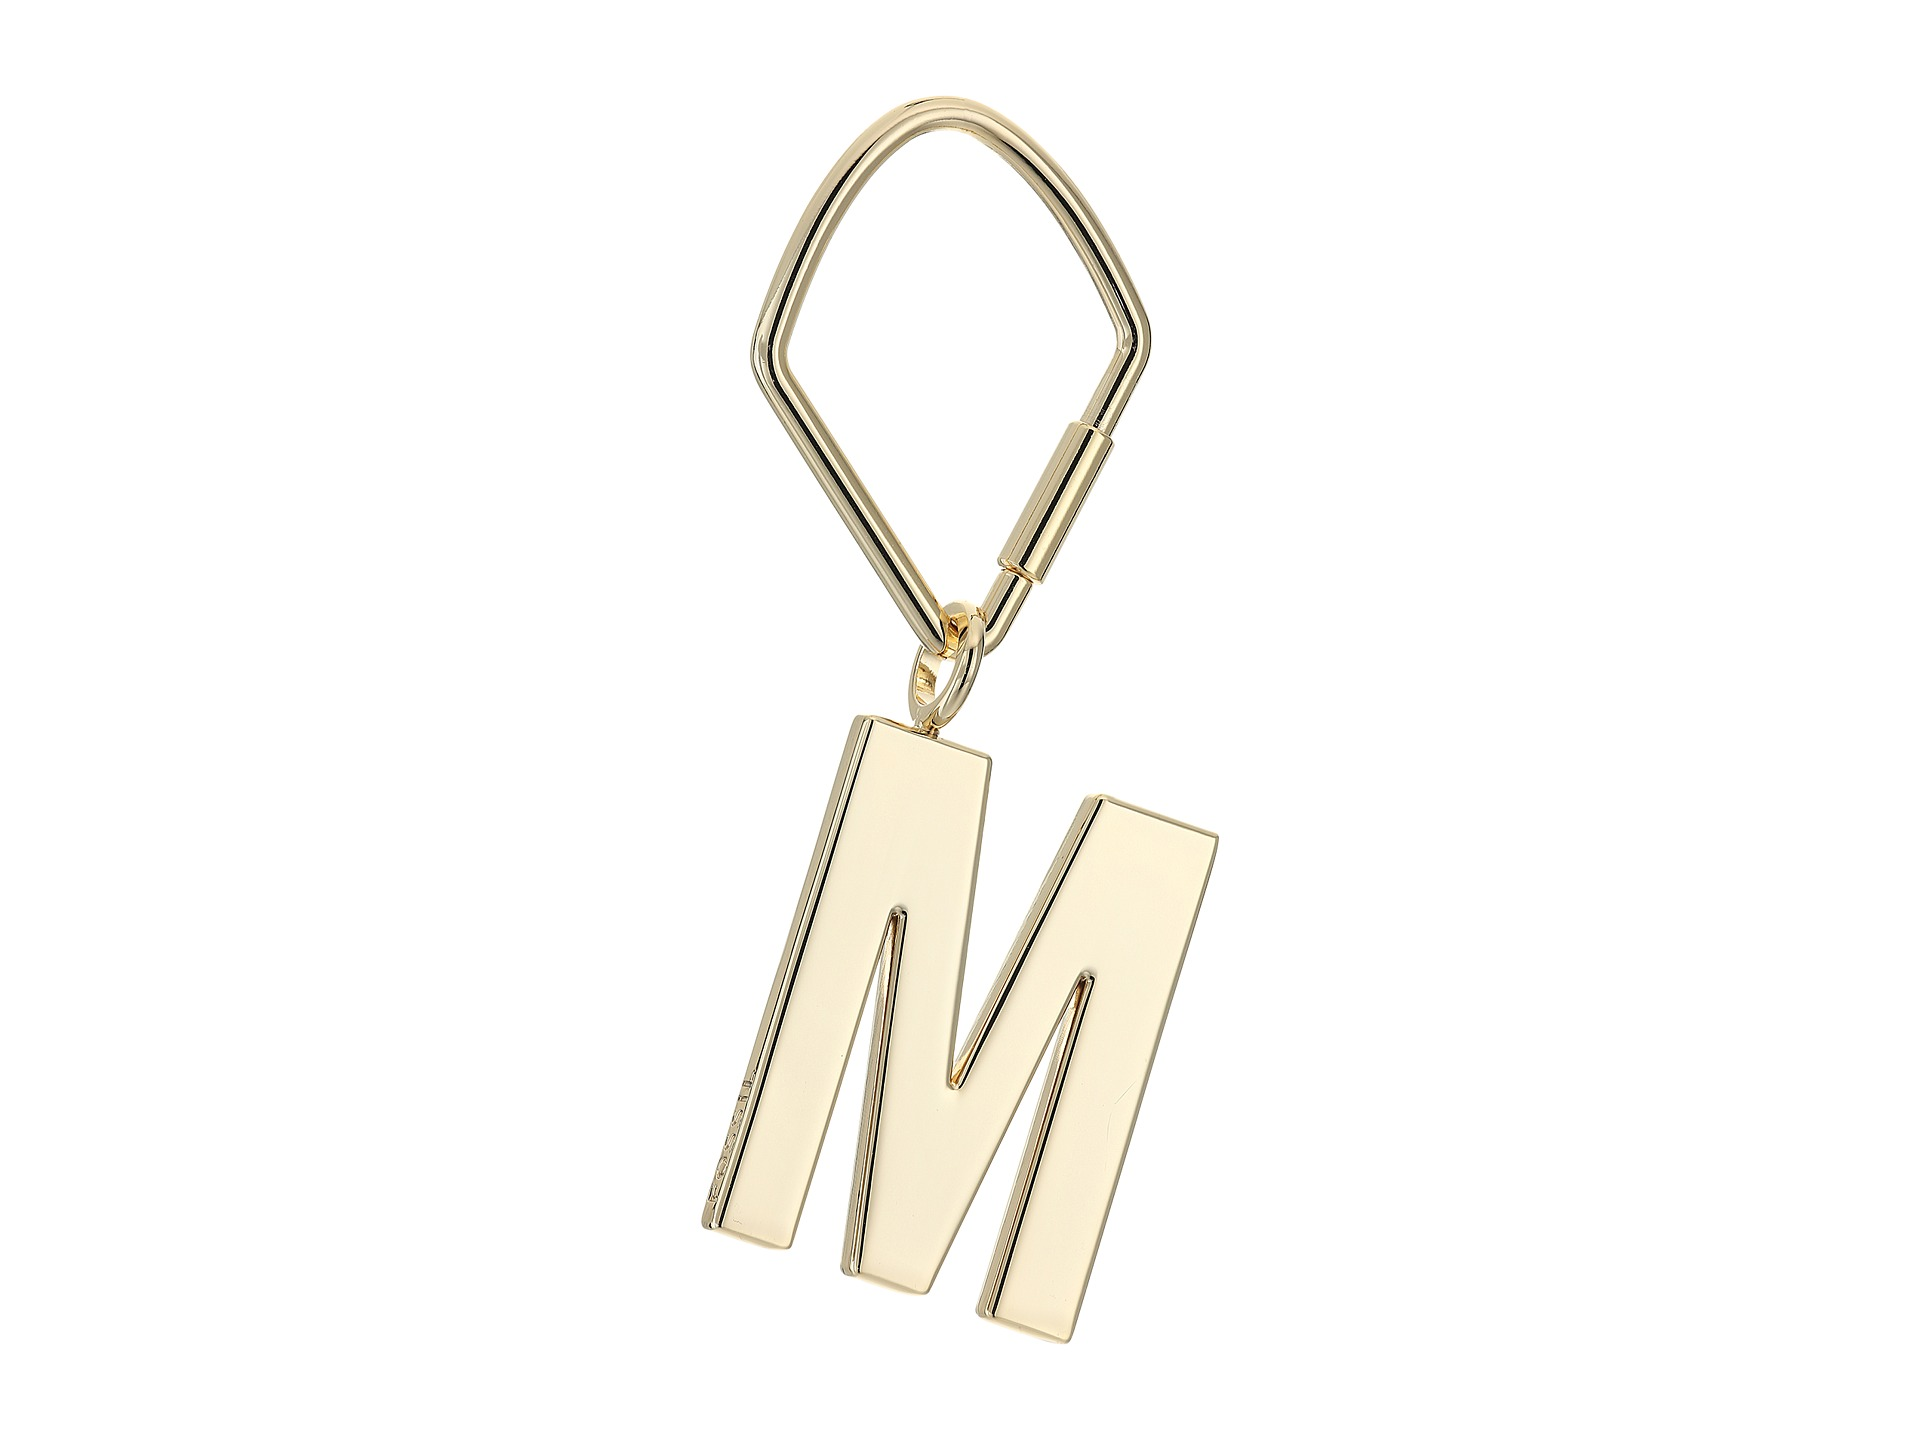 fossil letter bag charm gold m zapposcom free shipping With letter bag charm